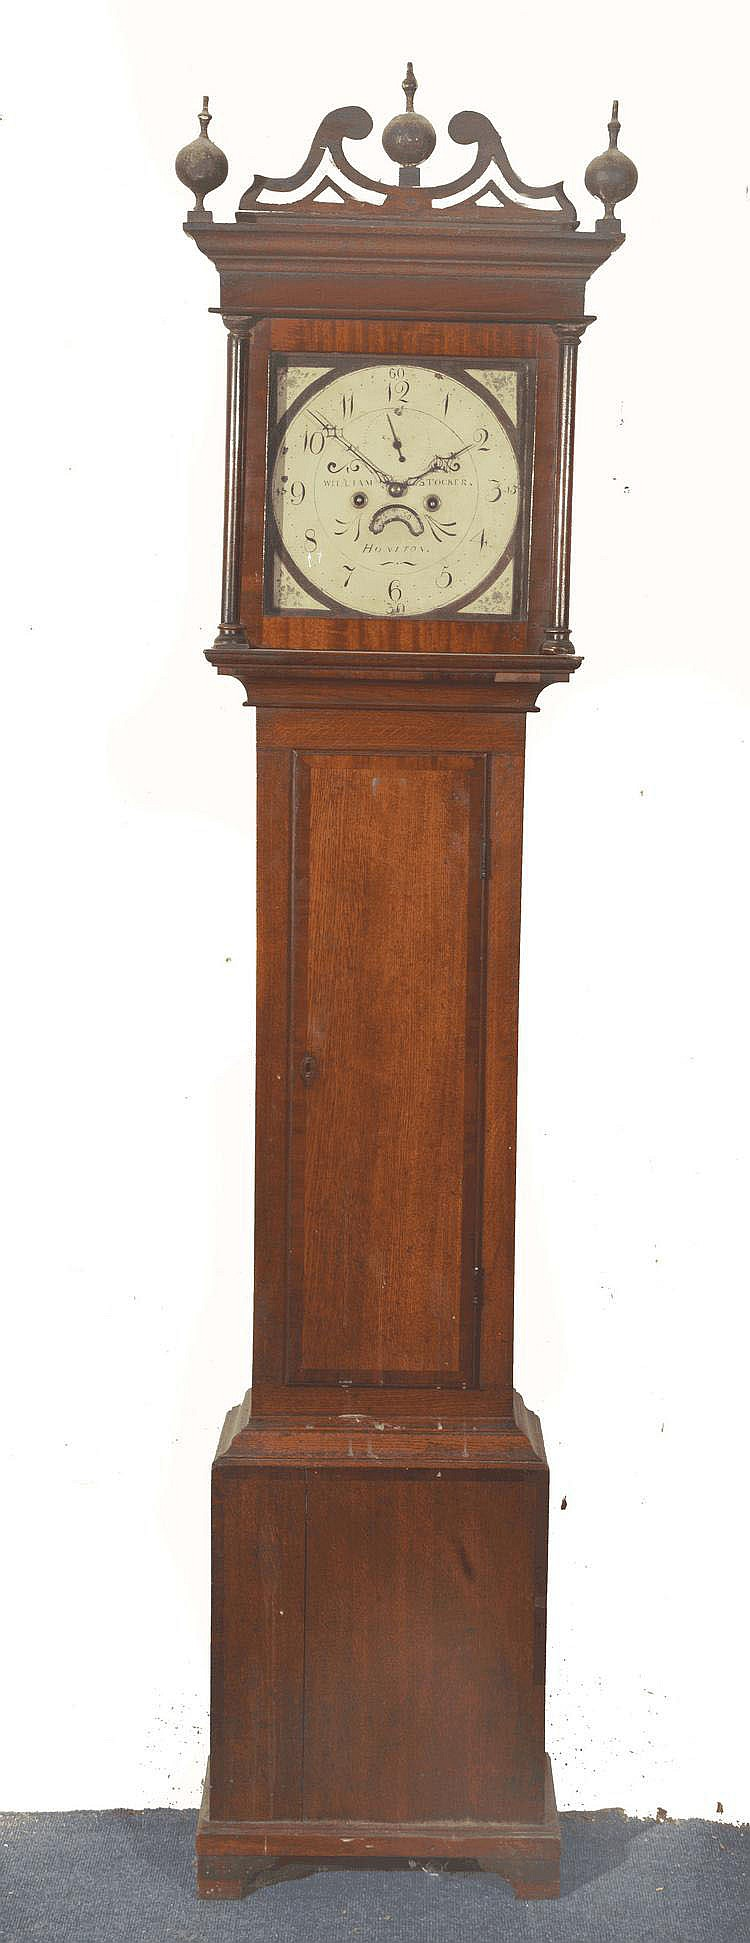 A 19TH CENTURY EIGHT DAY LONG CASE CLOCK, the 12